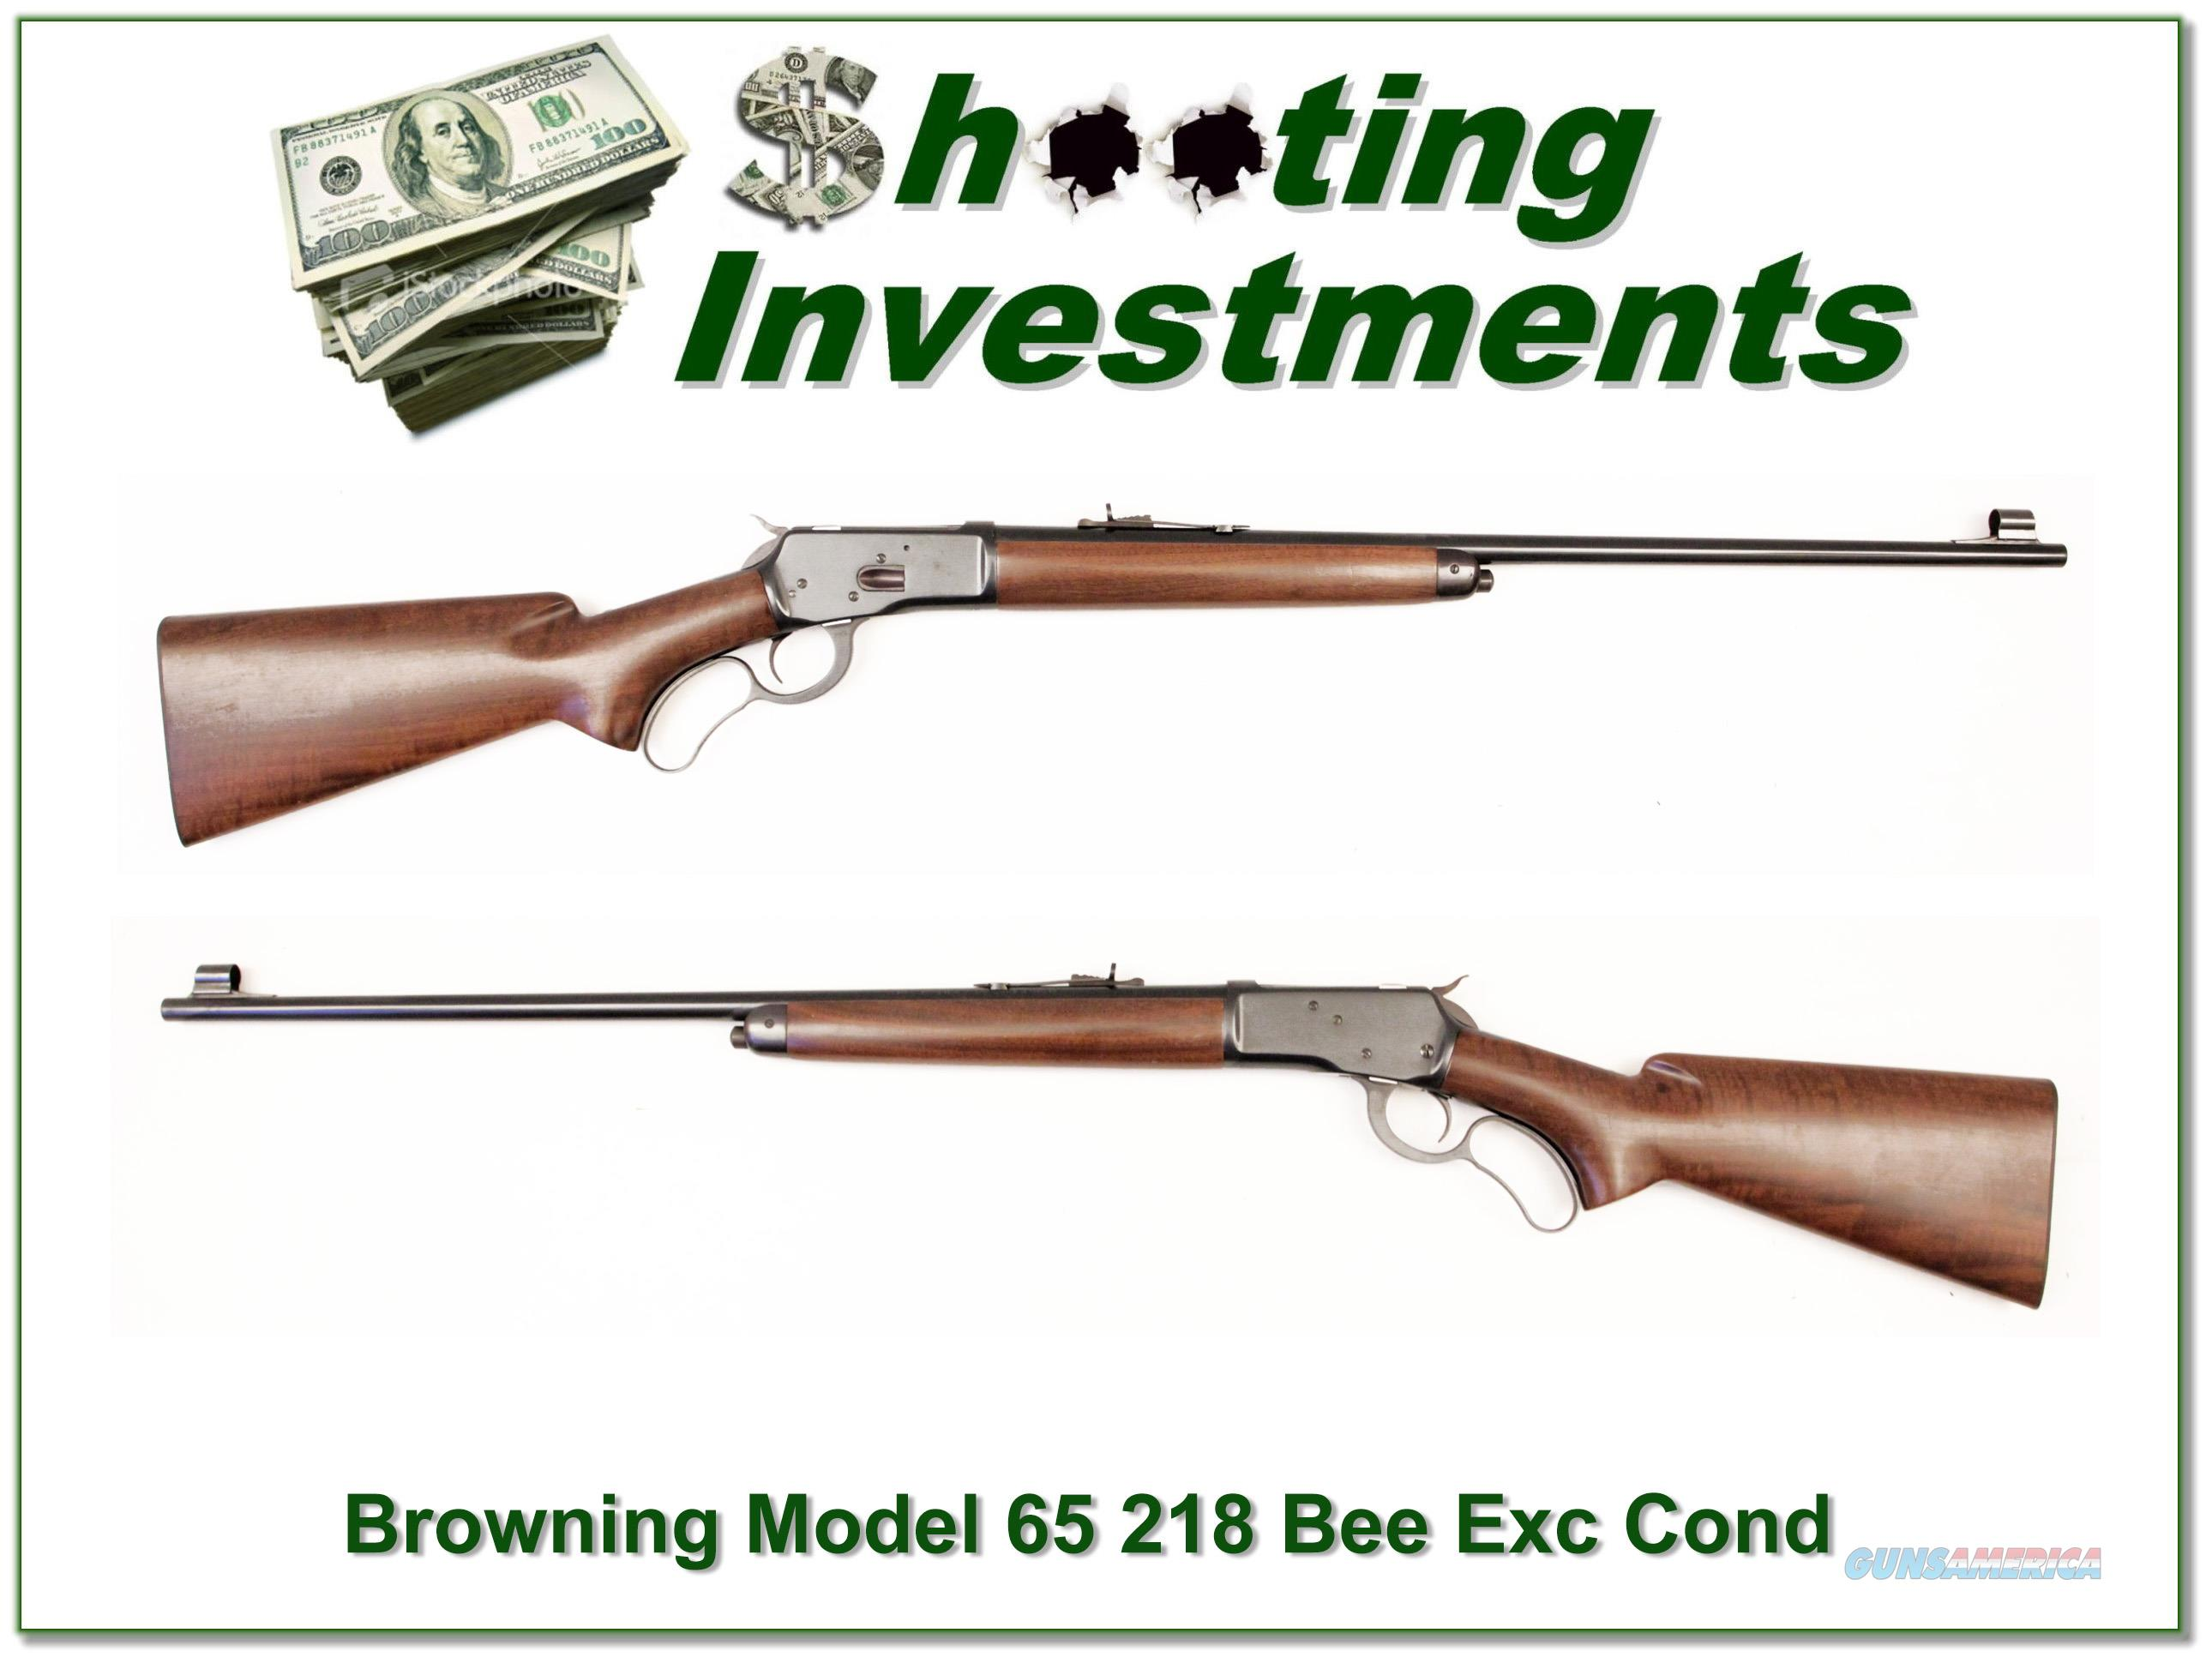 Browning Model 65 Lever Action 218 Bee Exc Cond!  Guns > Rifles > Browning Rifles > Lever Action